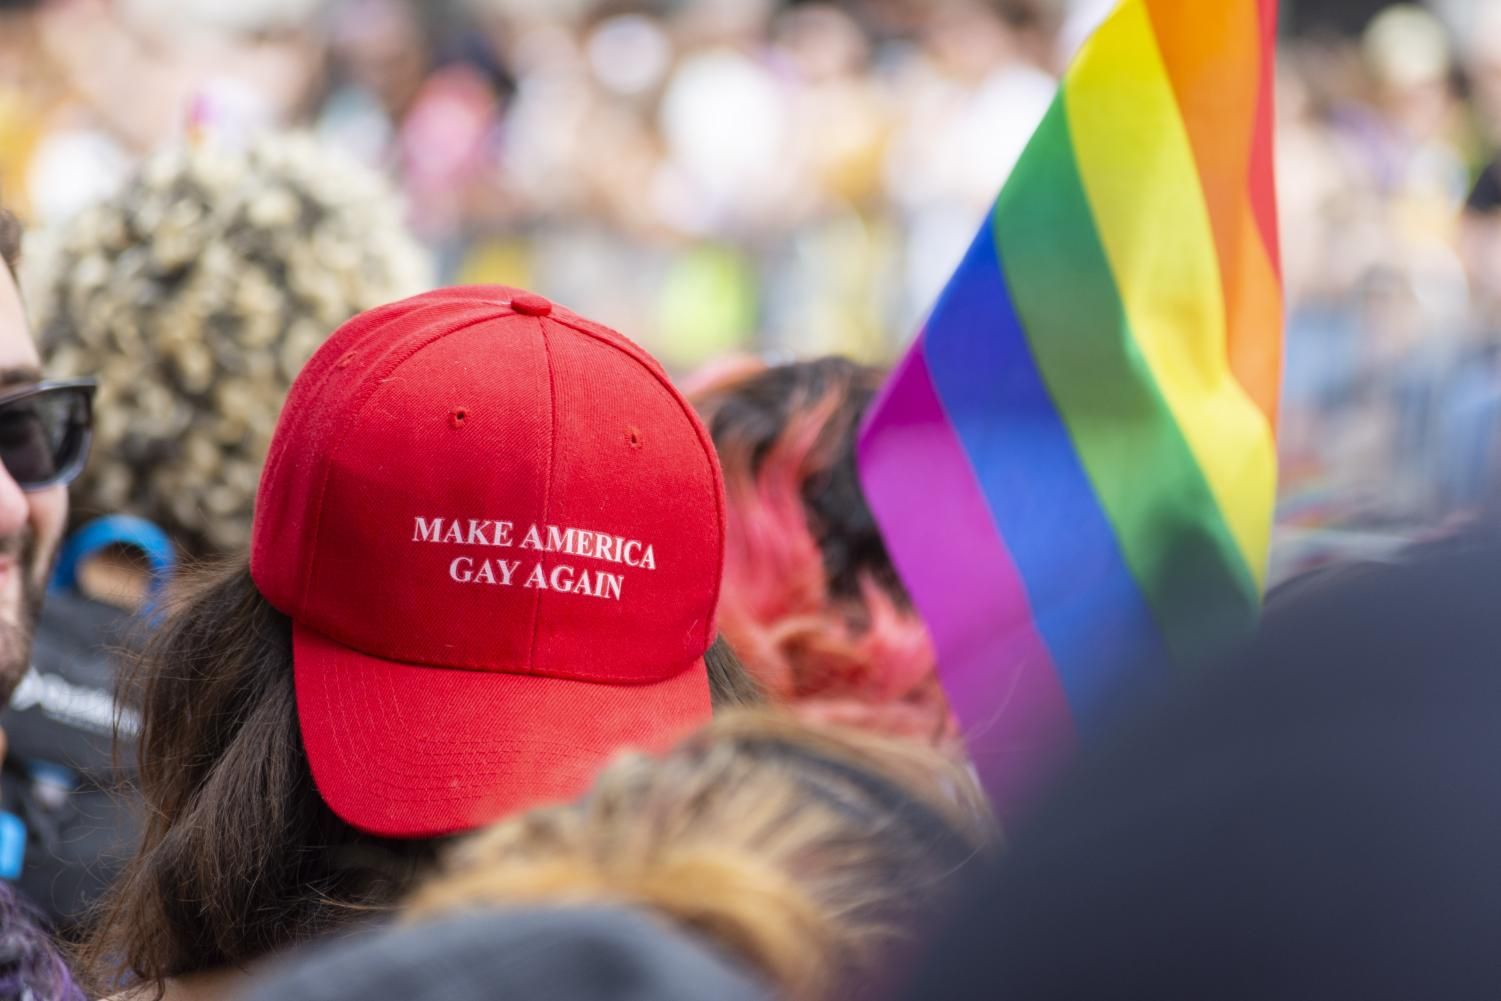 A+parade+attendee+wears+a+hat+based+on+President+Donald+Trump%27s+%22Make+America+Great+Again%22+slogan.+This+time%2C+the+message+is+different.